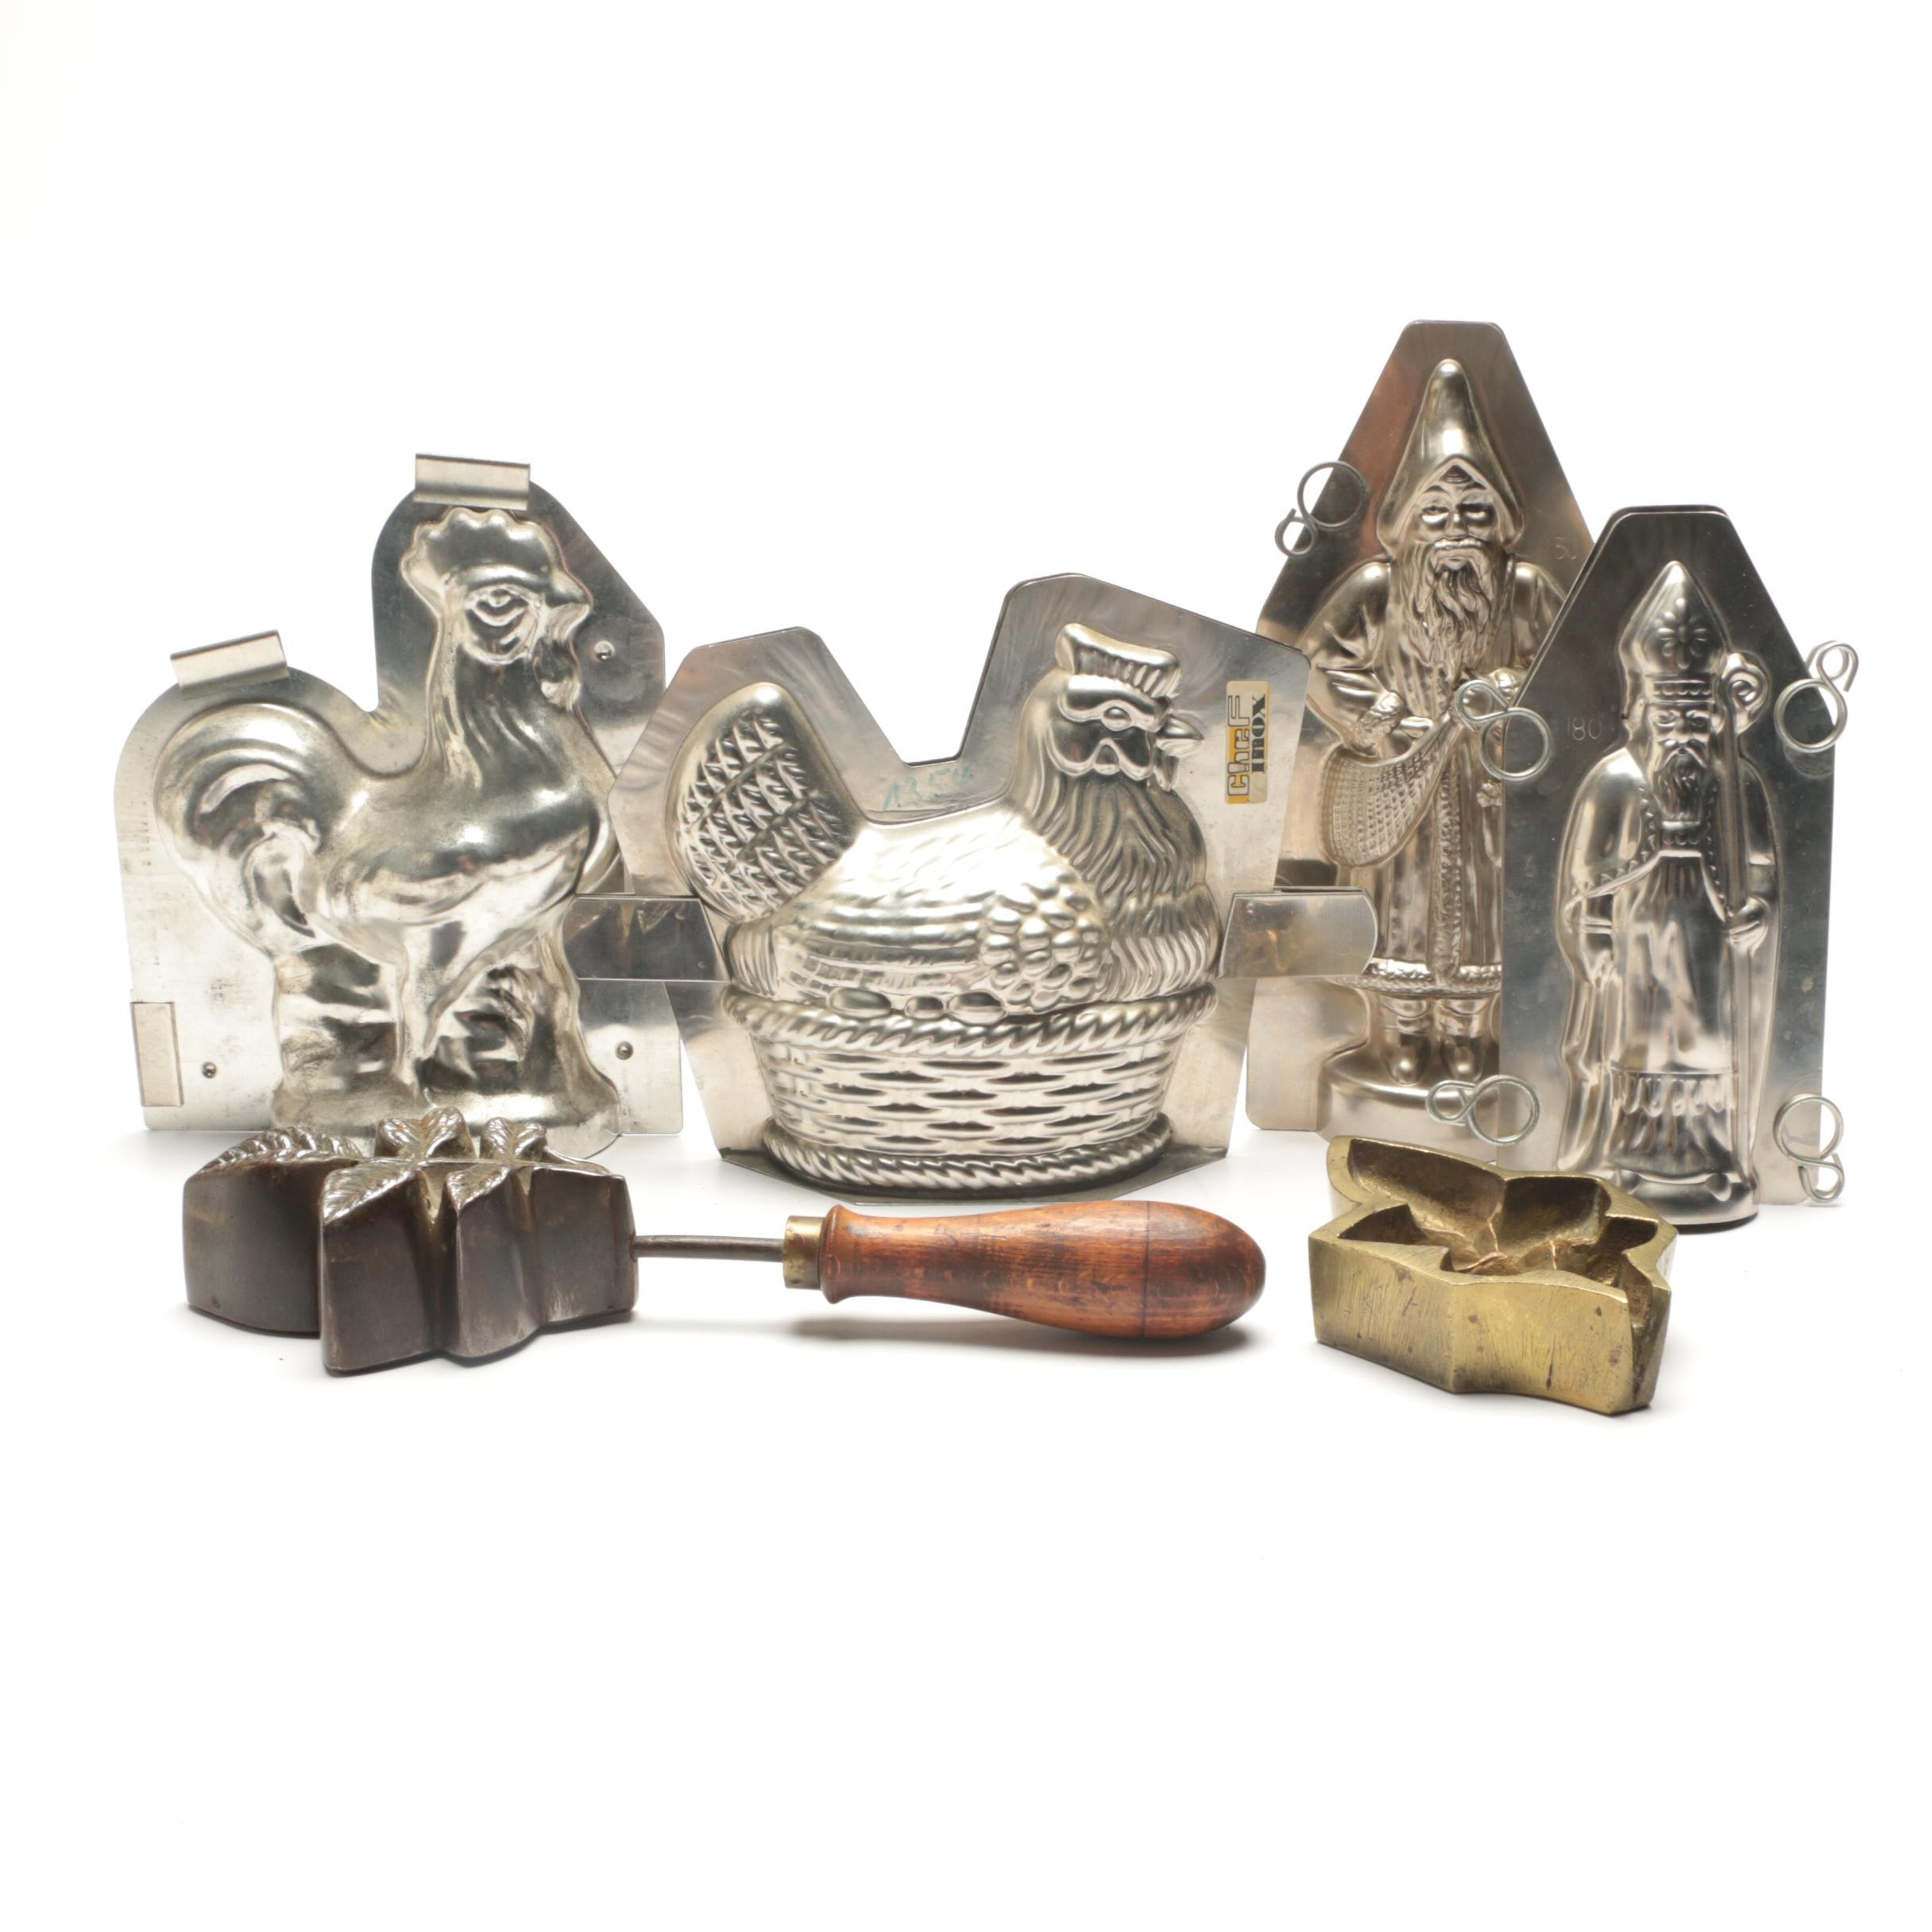 Antique and Vintage Chocolate Molds